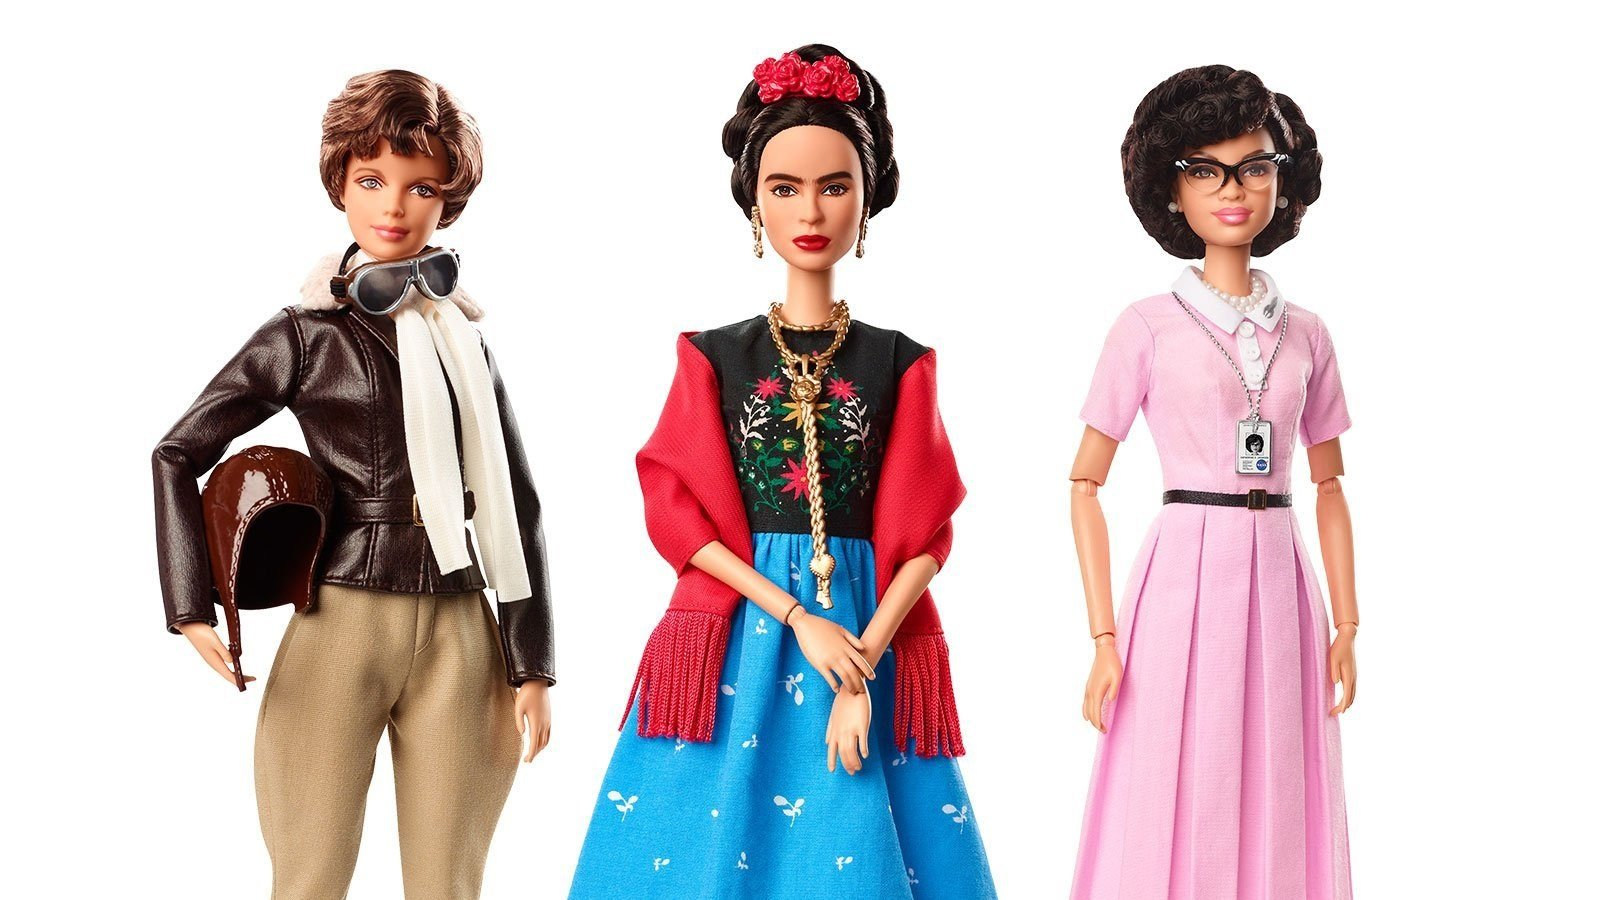 Barbie releasing 17 new dolls for International Women's Day